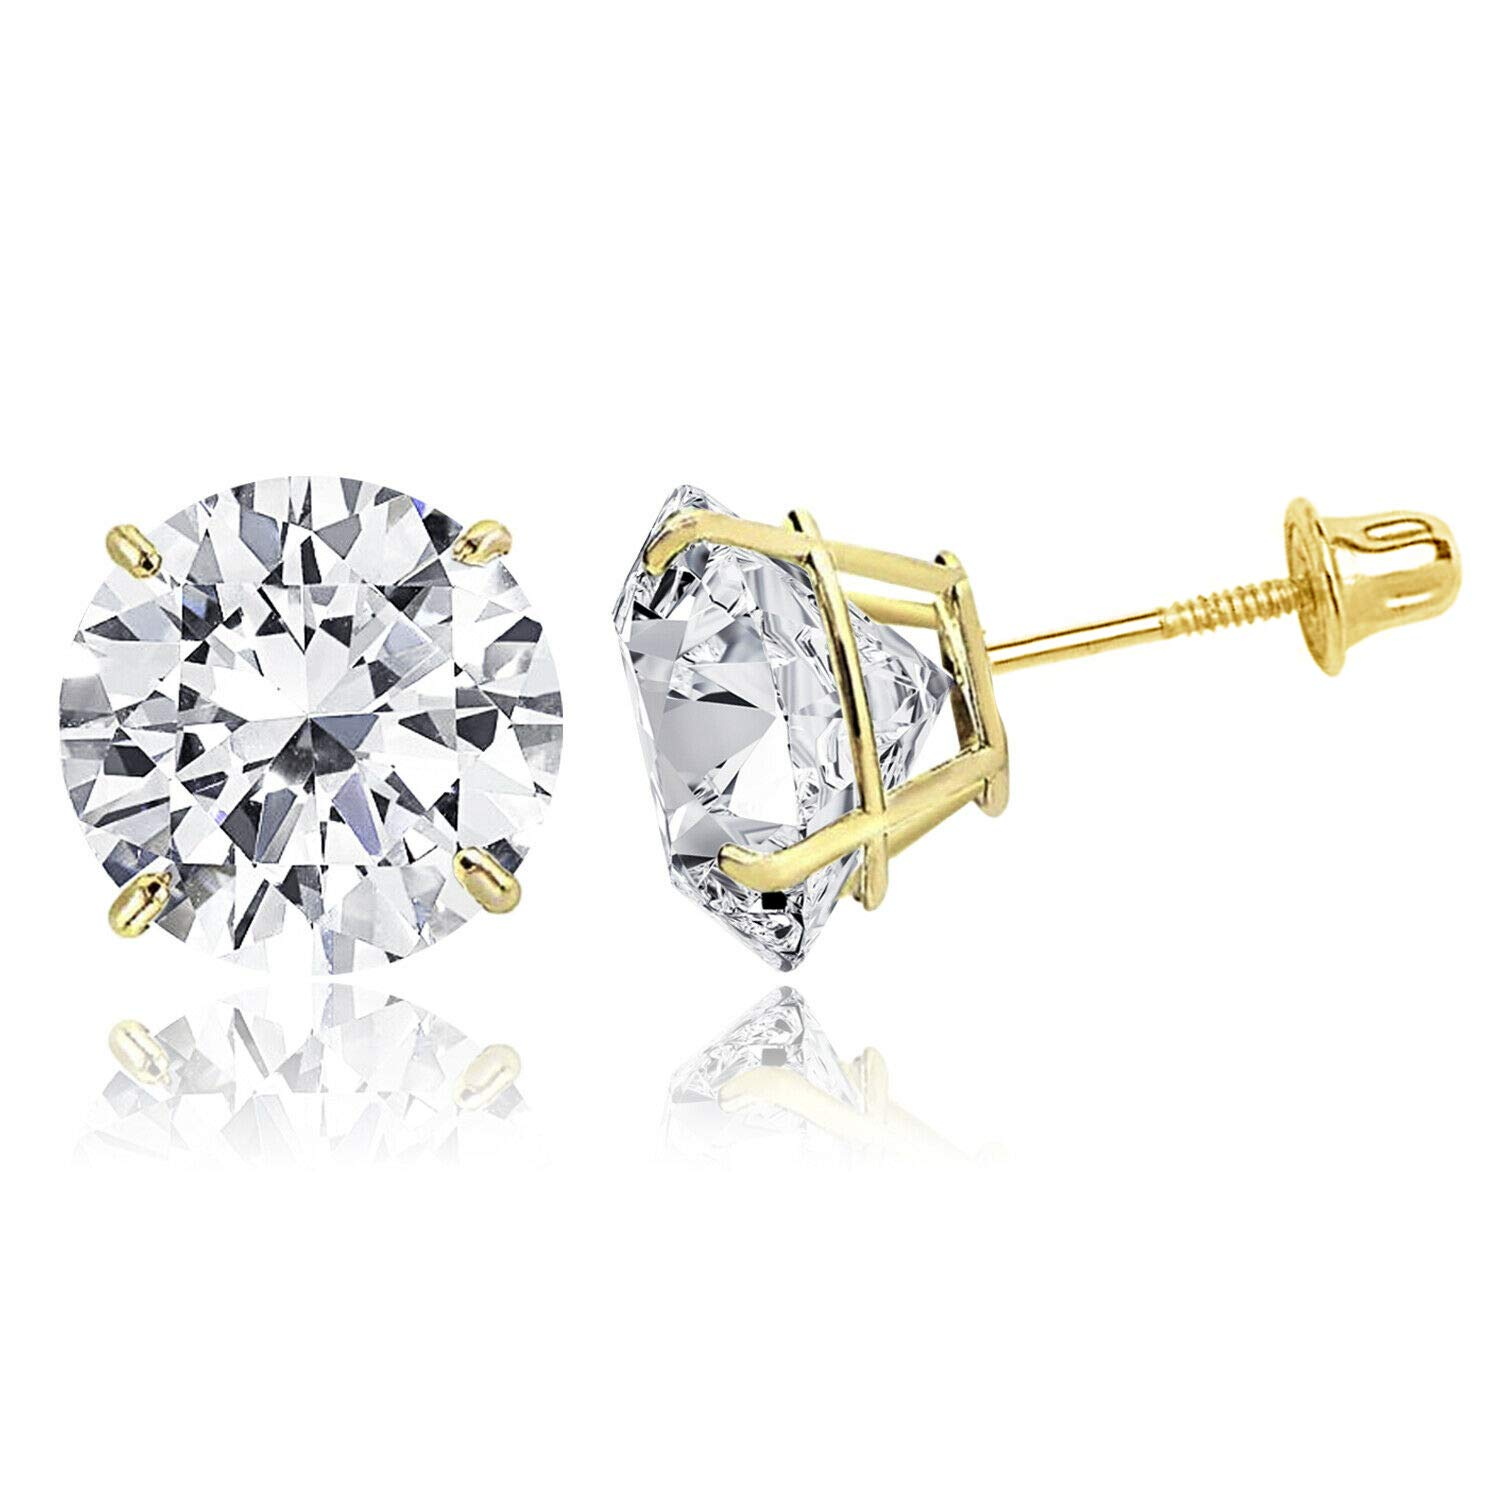 TIONEER 14K Solid Gold or Sterling Silver Stud Earrings for Women and Men, Cubic Zirconia Round Cut & Princess Cut, (White, Yellow, Rose, Black, Silver), 3mm - 9mm